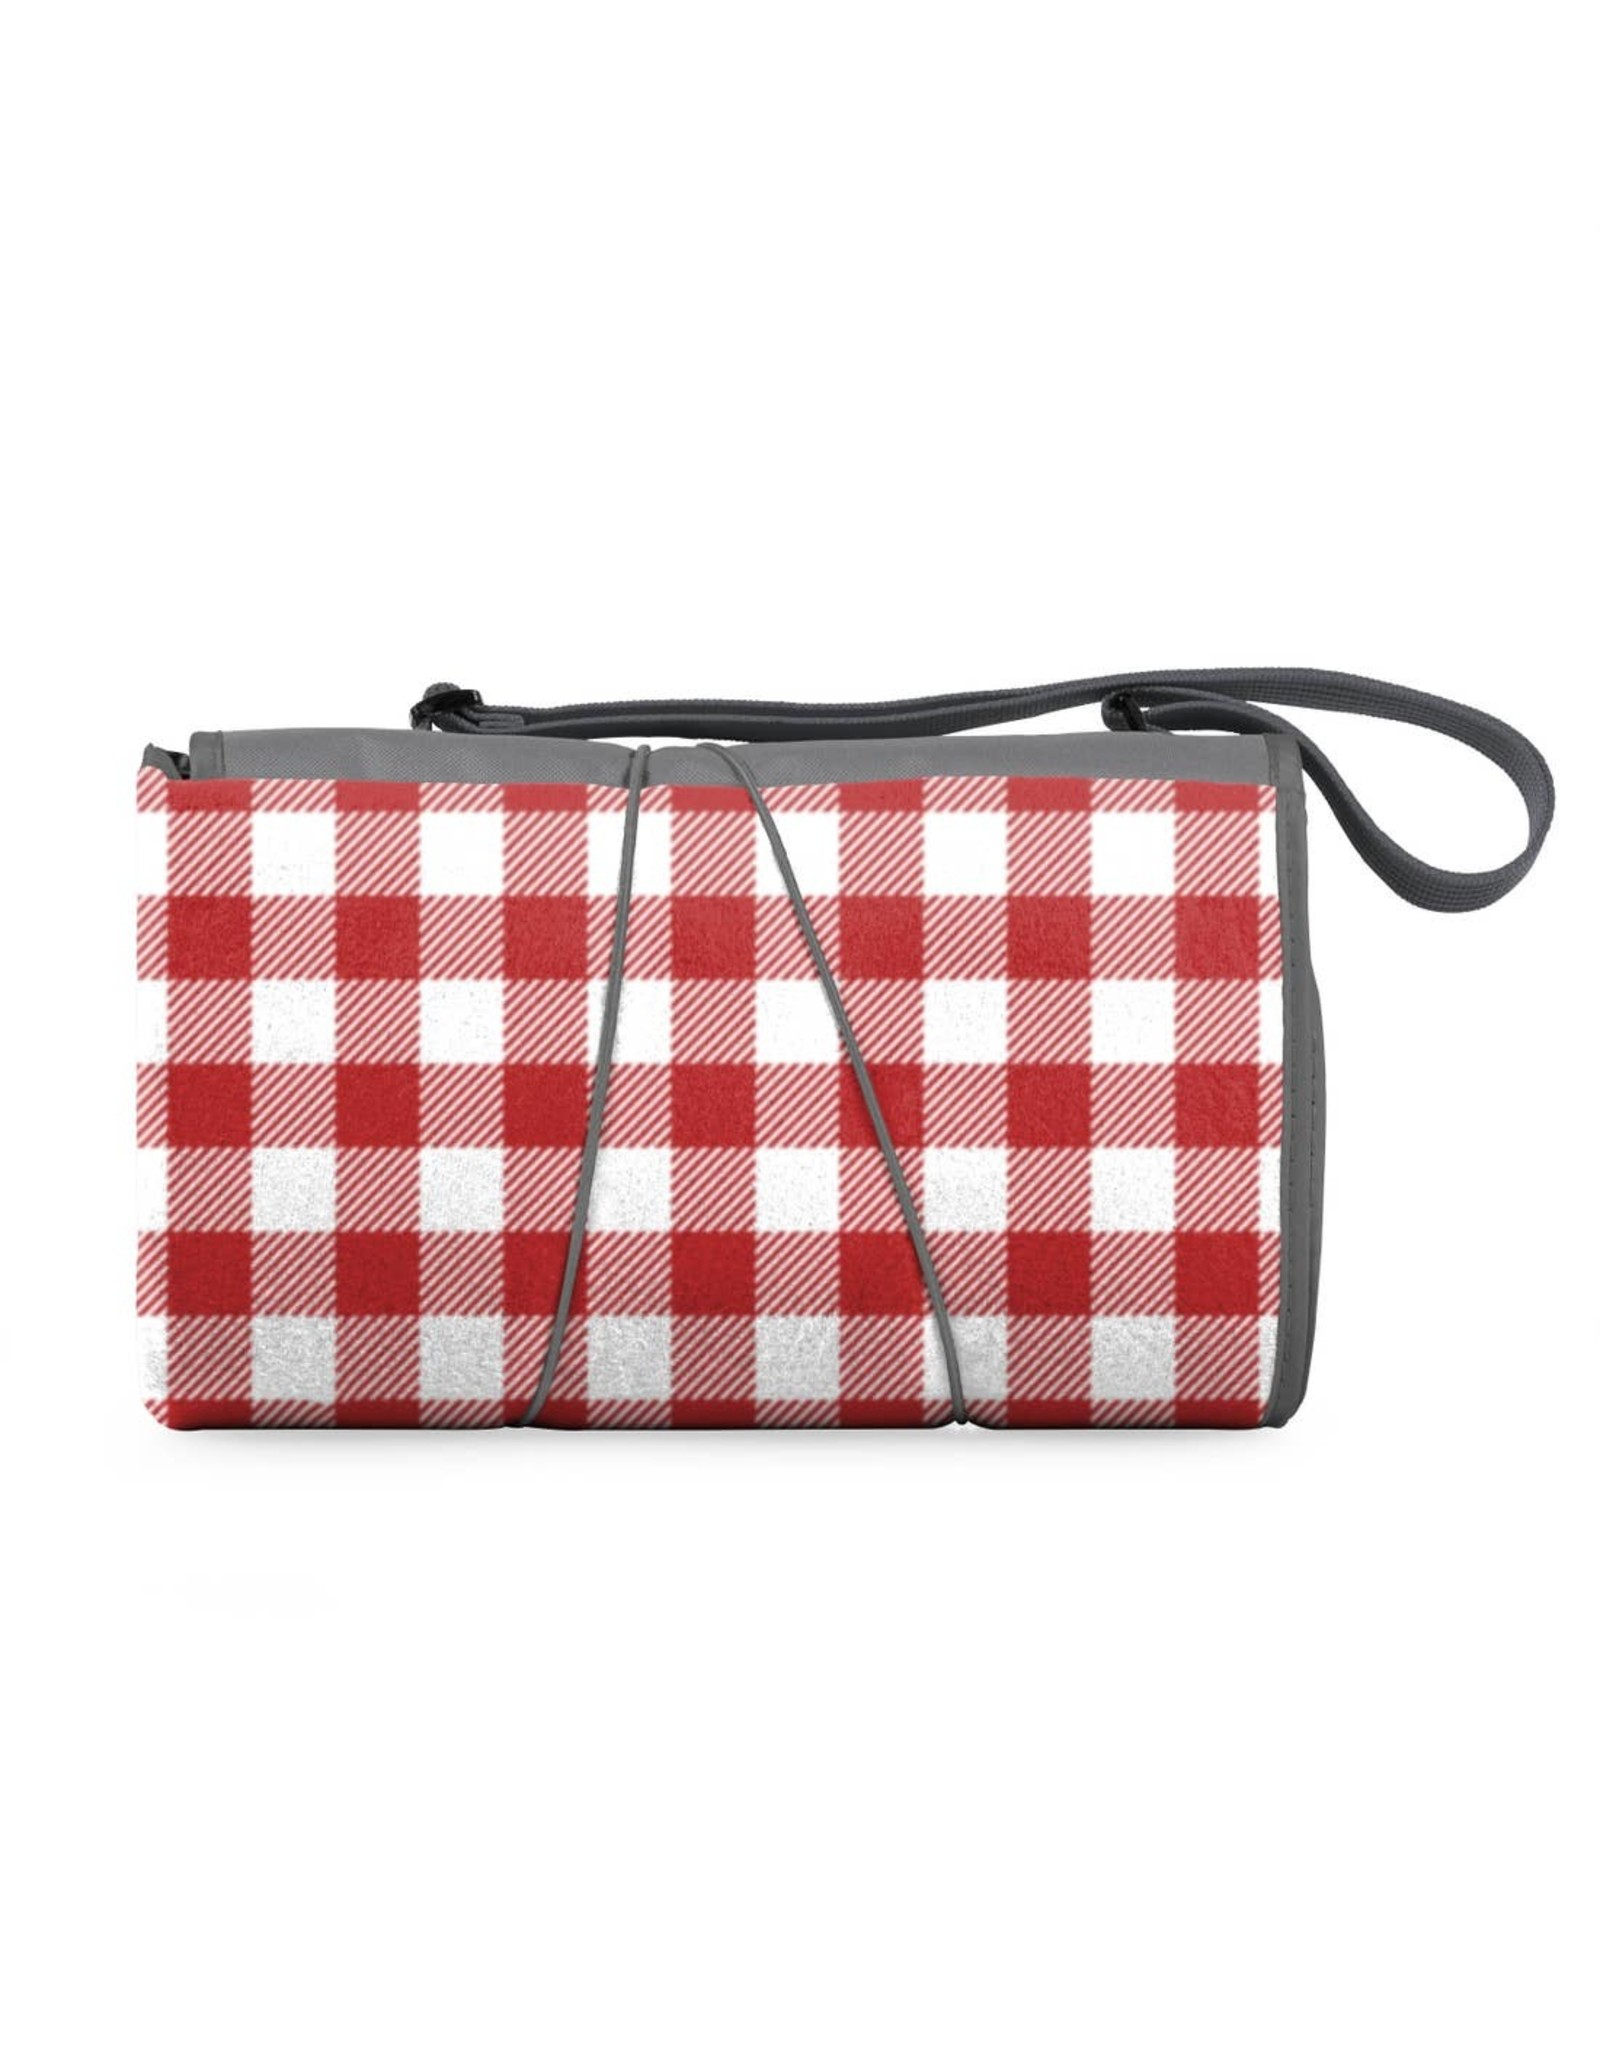 PCT Blanket Tote in Gingham